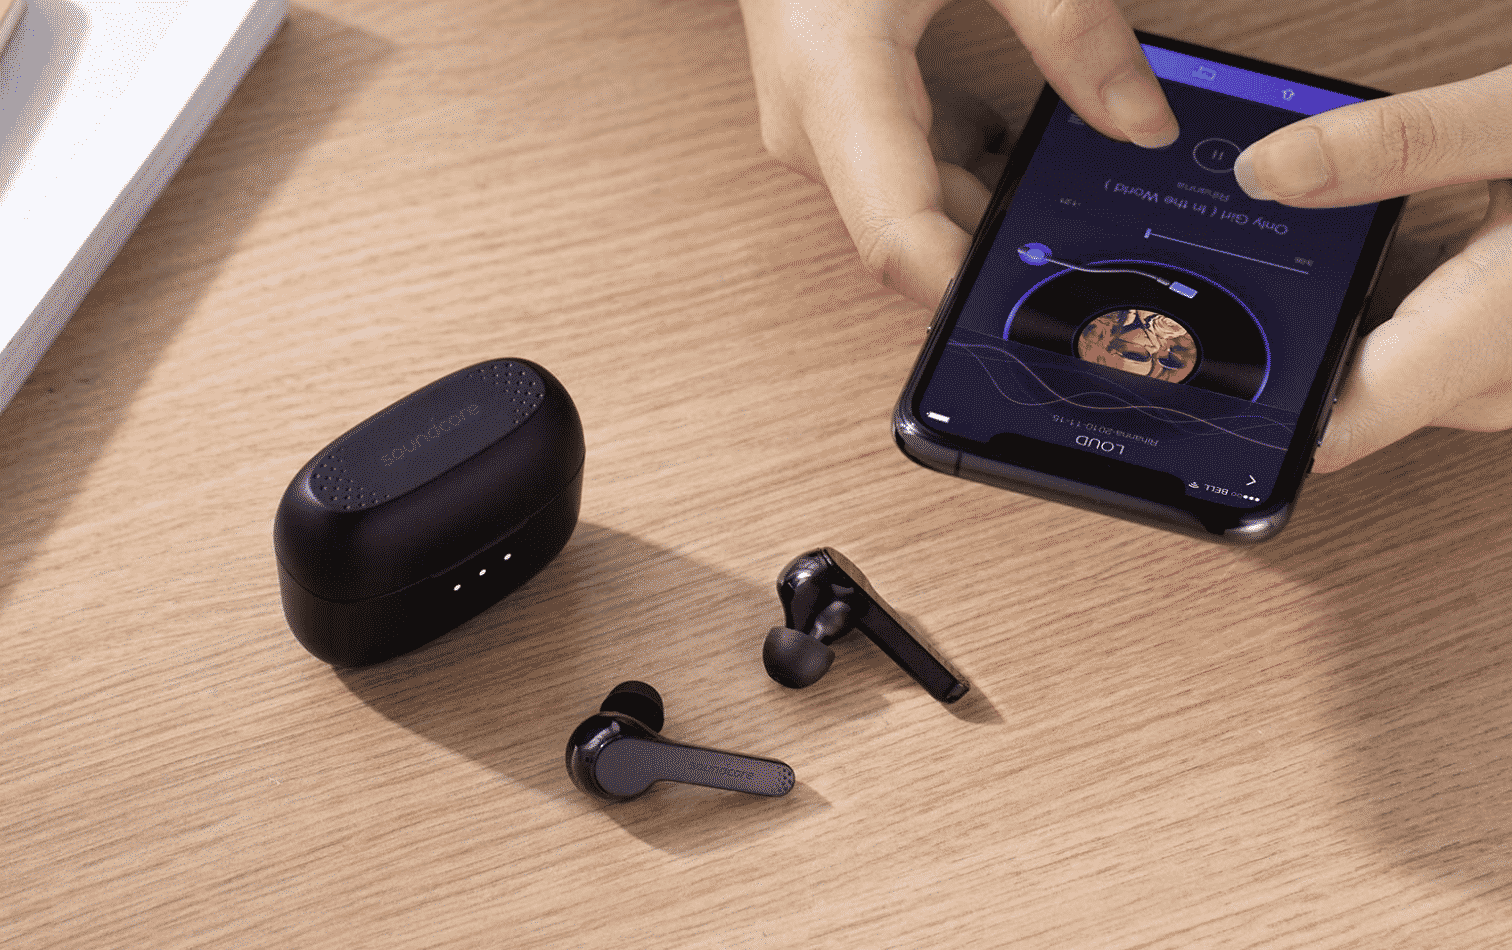 Save 25% on Anker's True Wireless Earbuds